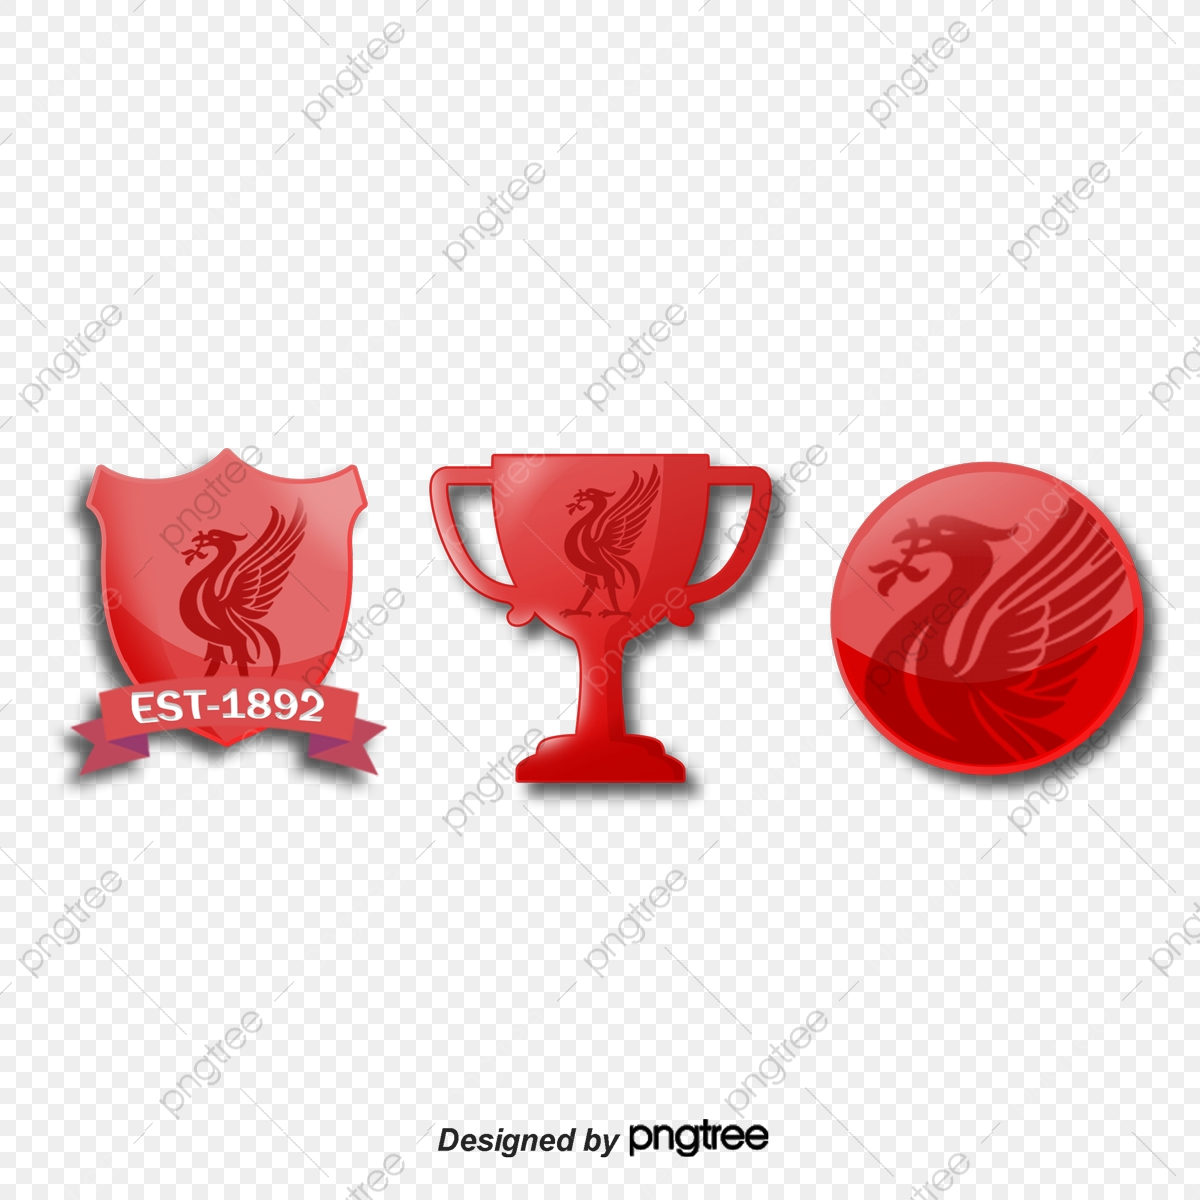 Liverpool Png Images Vector And Psd Files Free Download On Pngtree